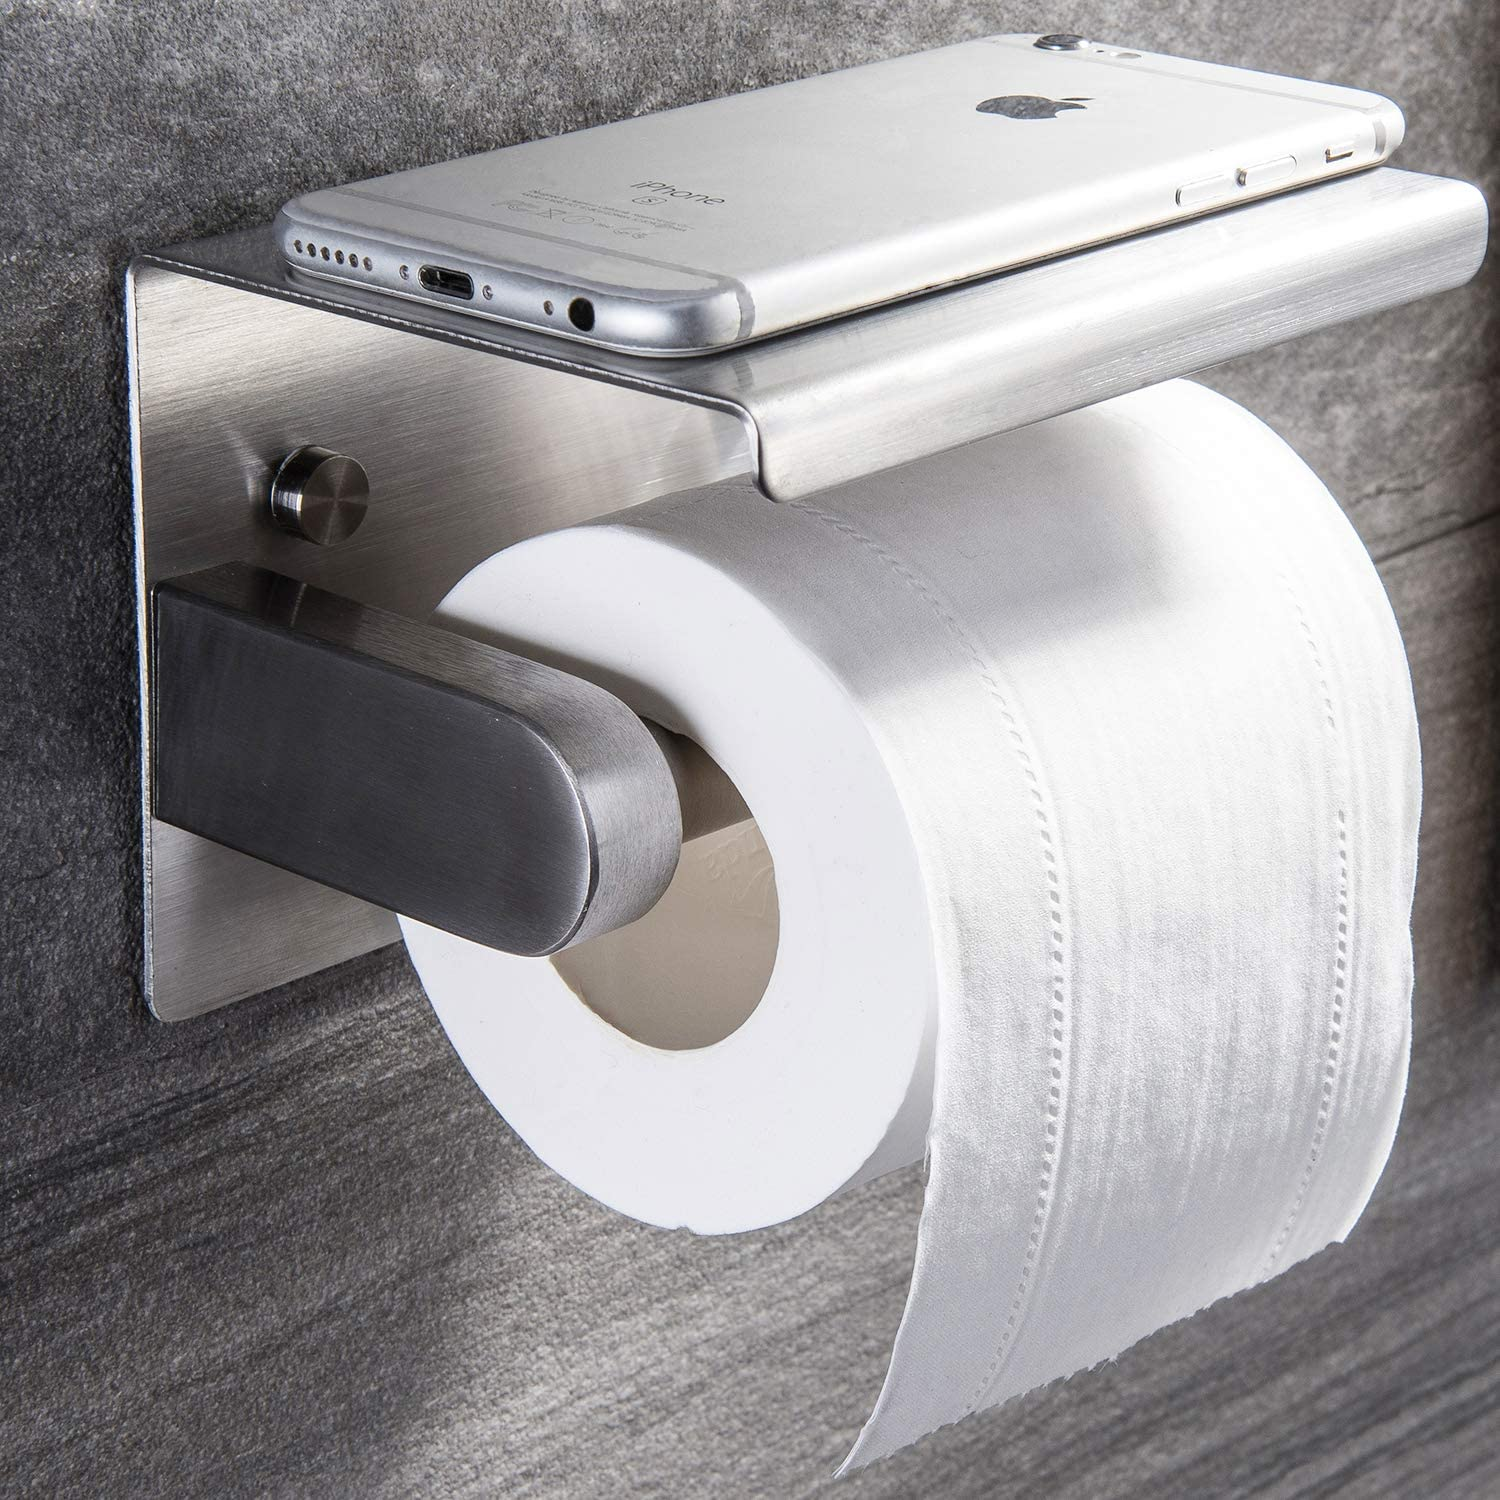 Porte Papier Toilette Zunto Support Papier Toilette Acier Inoxydable 304 Amazon Fr Bricolage